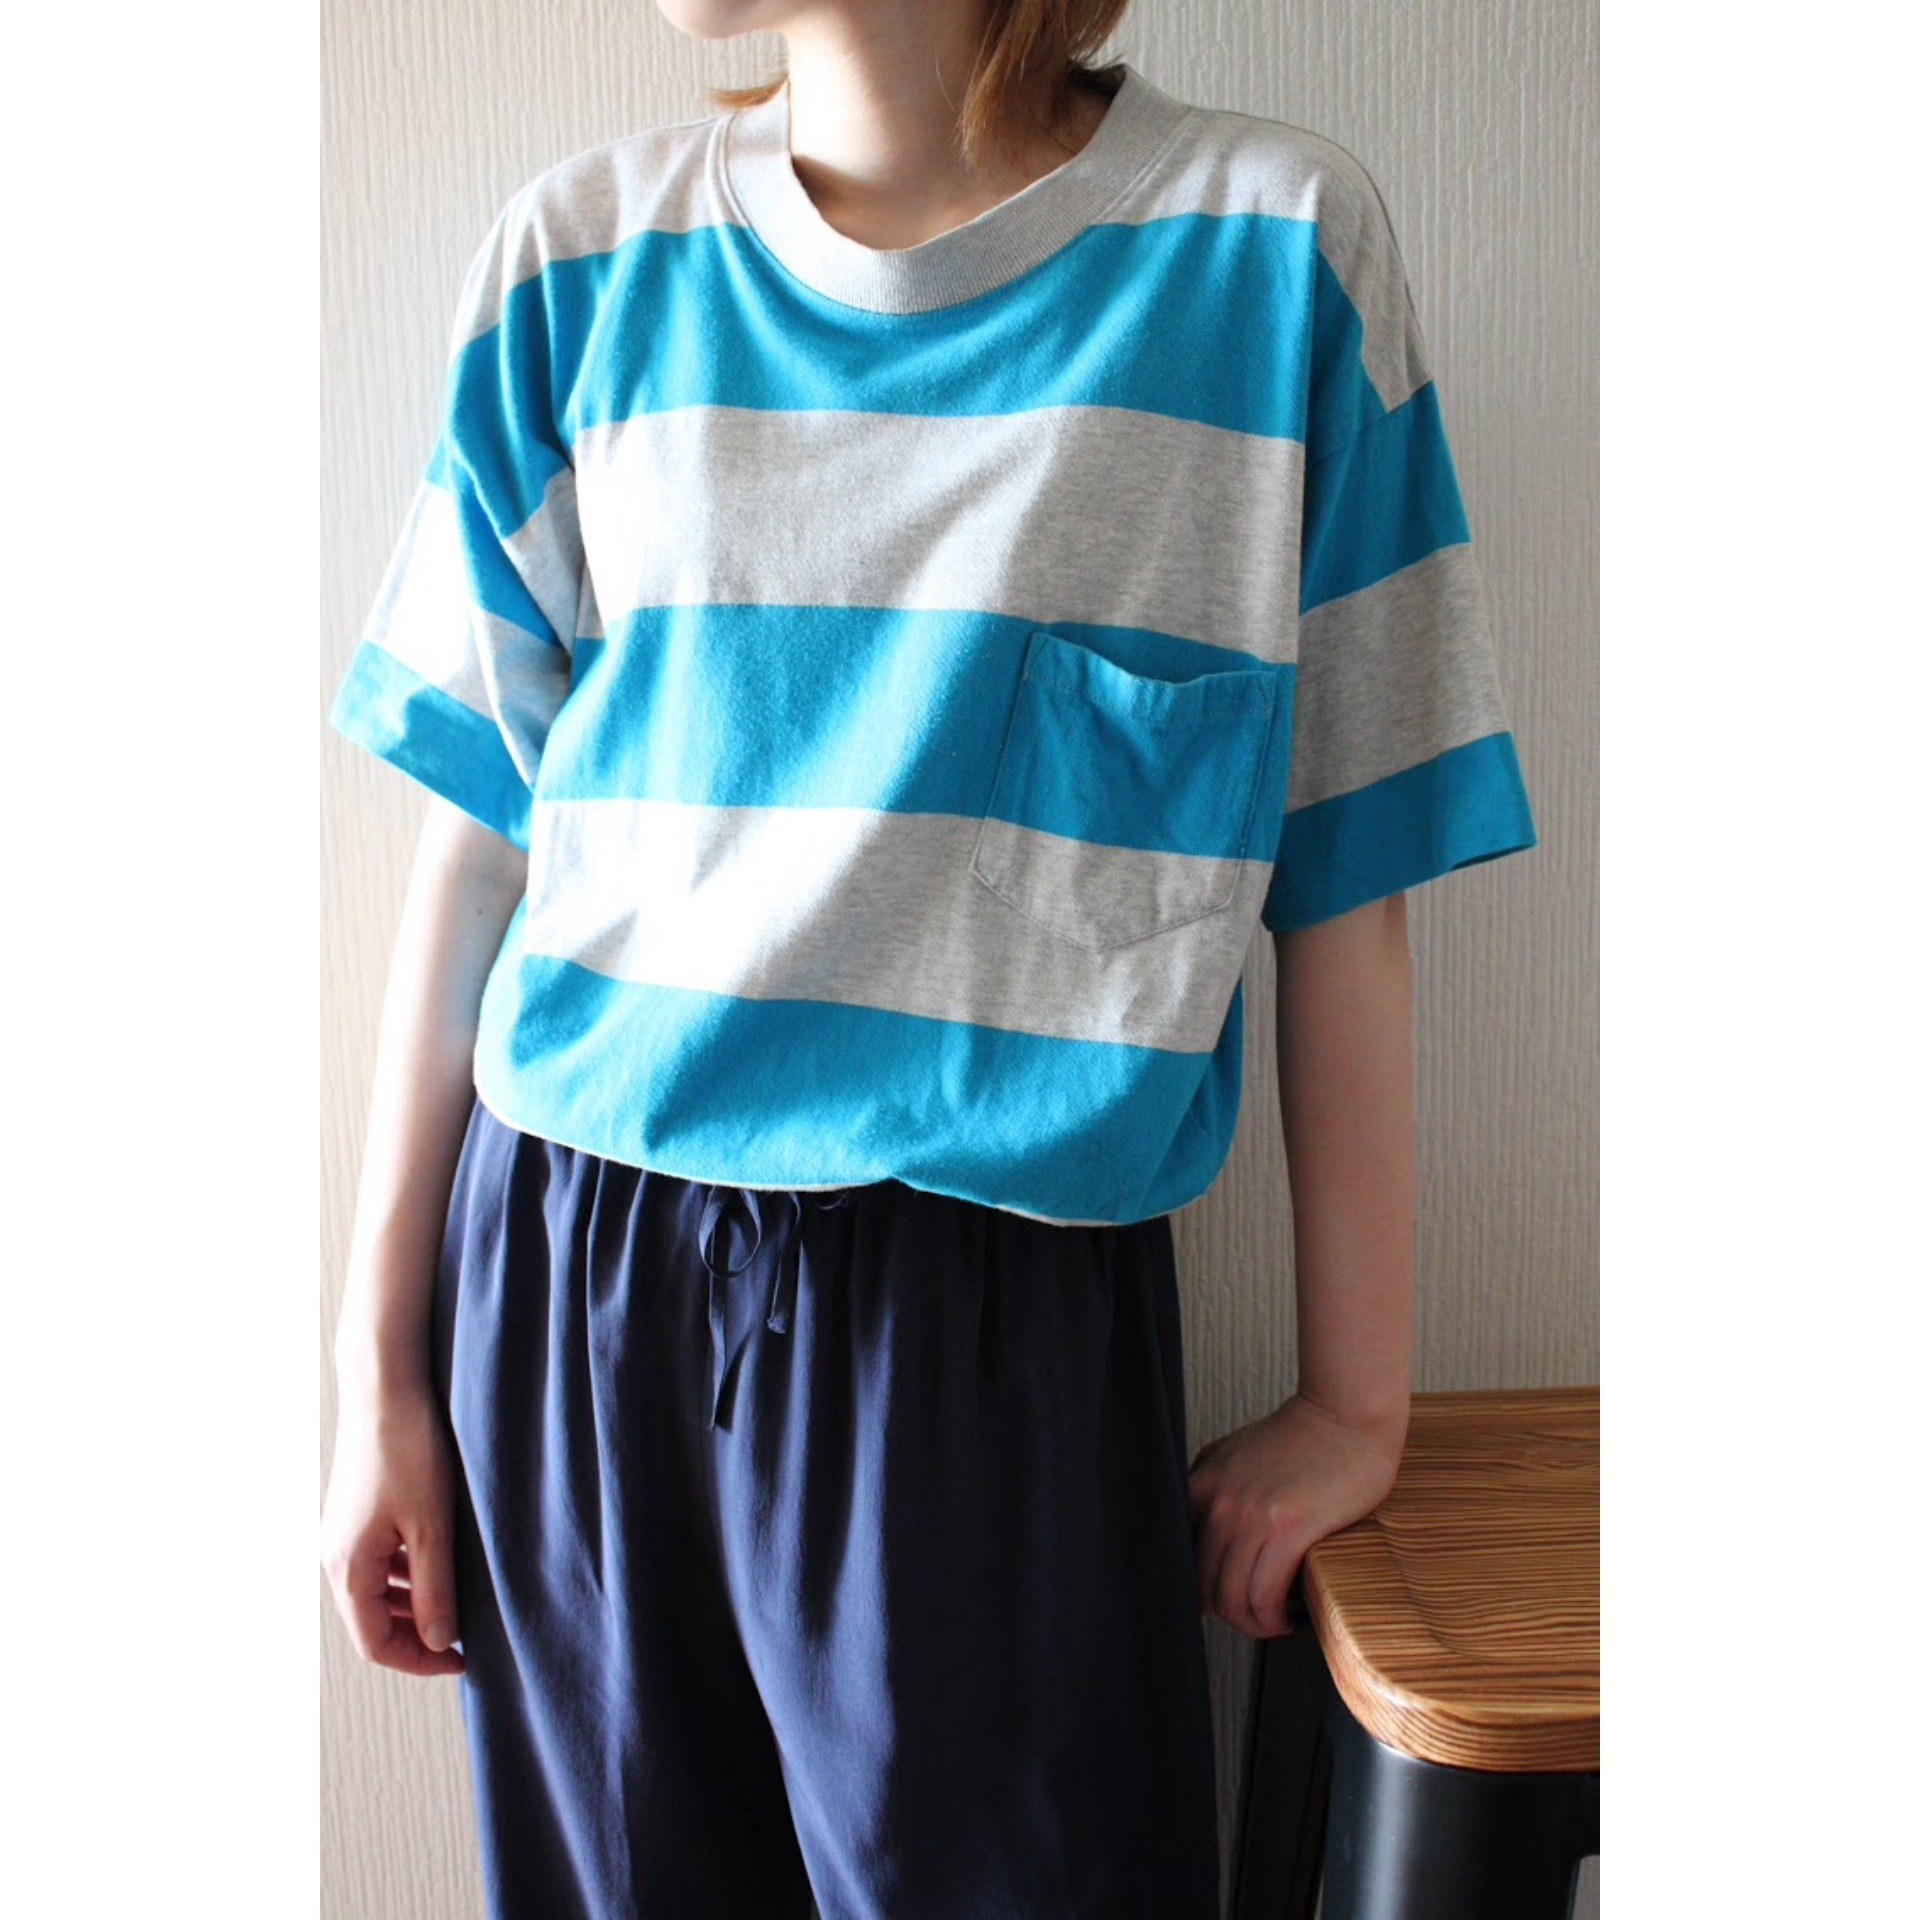 Vintage border pocket t shirt